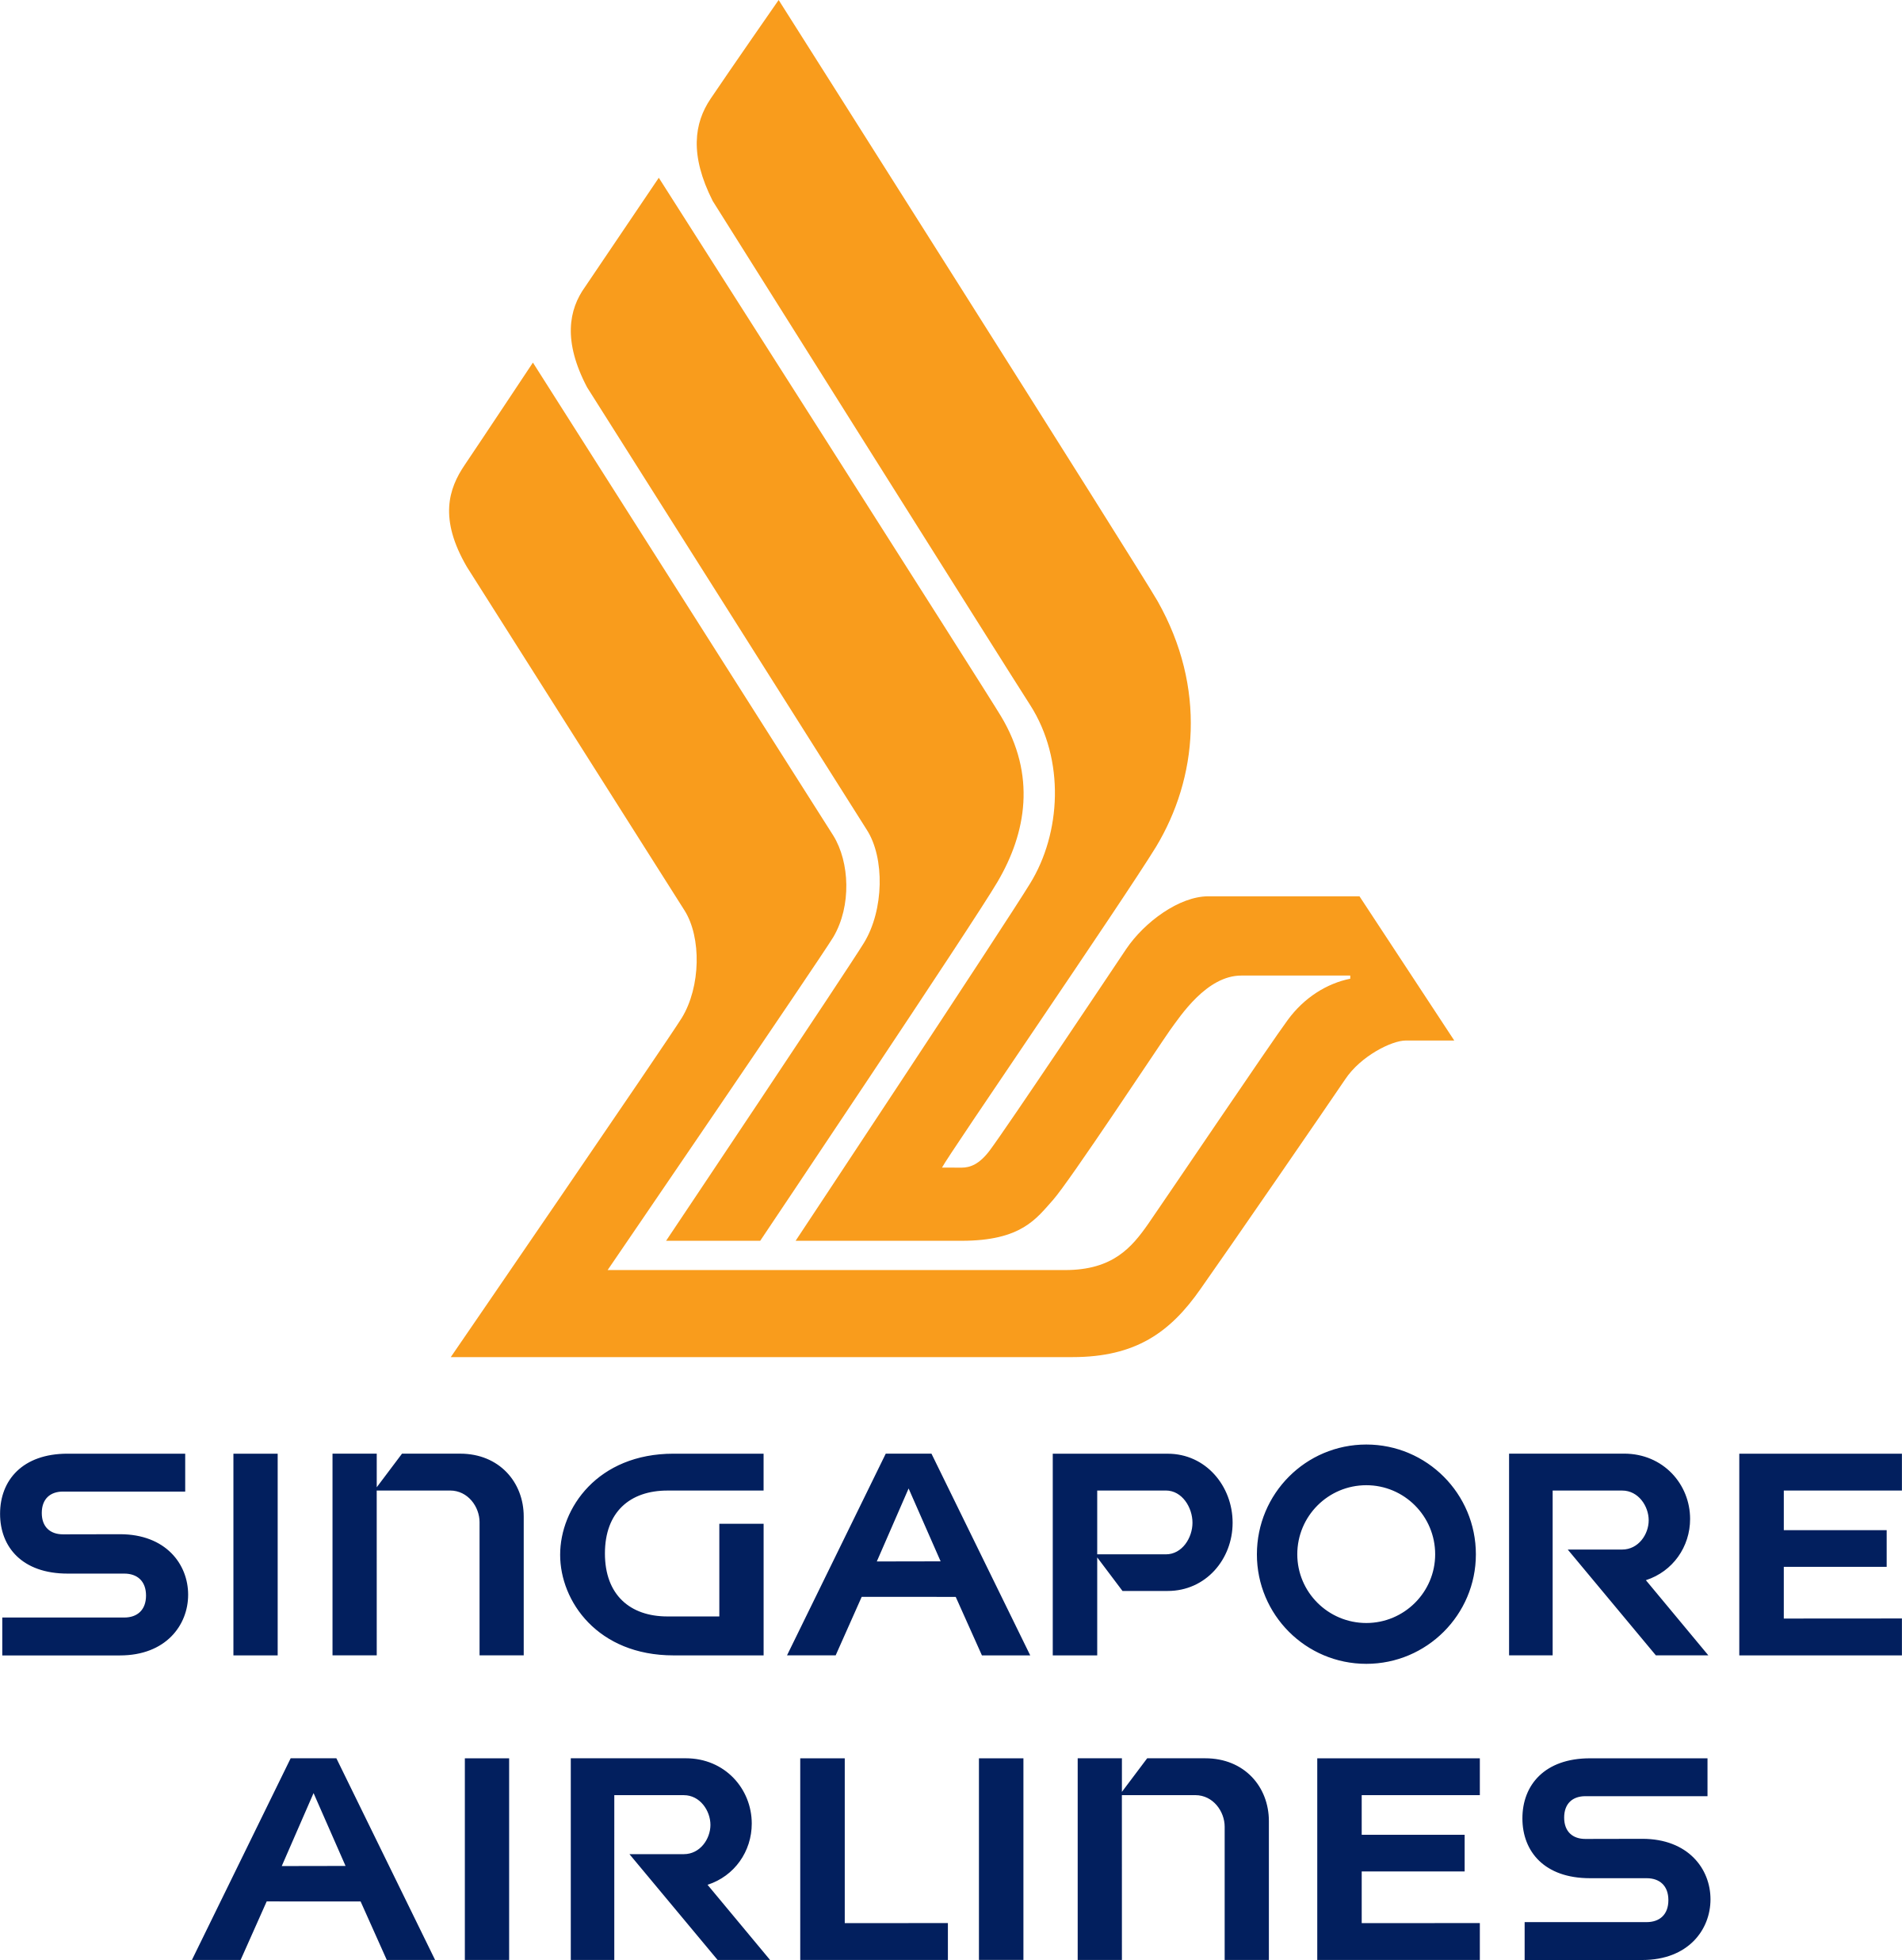 singapore-airlines-logo-png-transparent.png